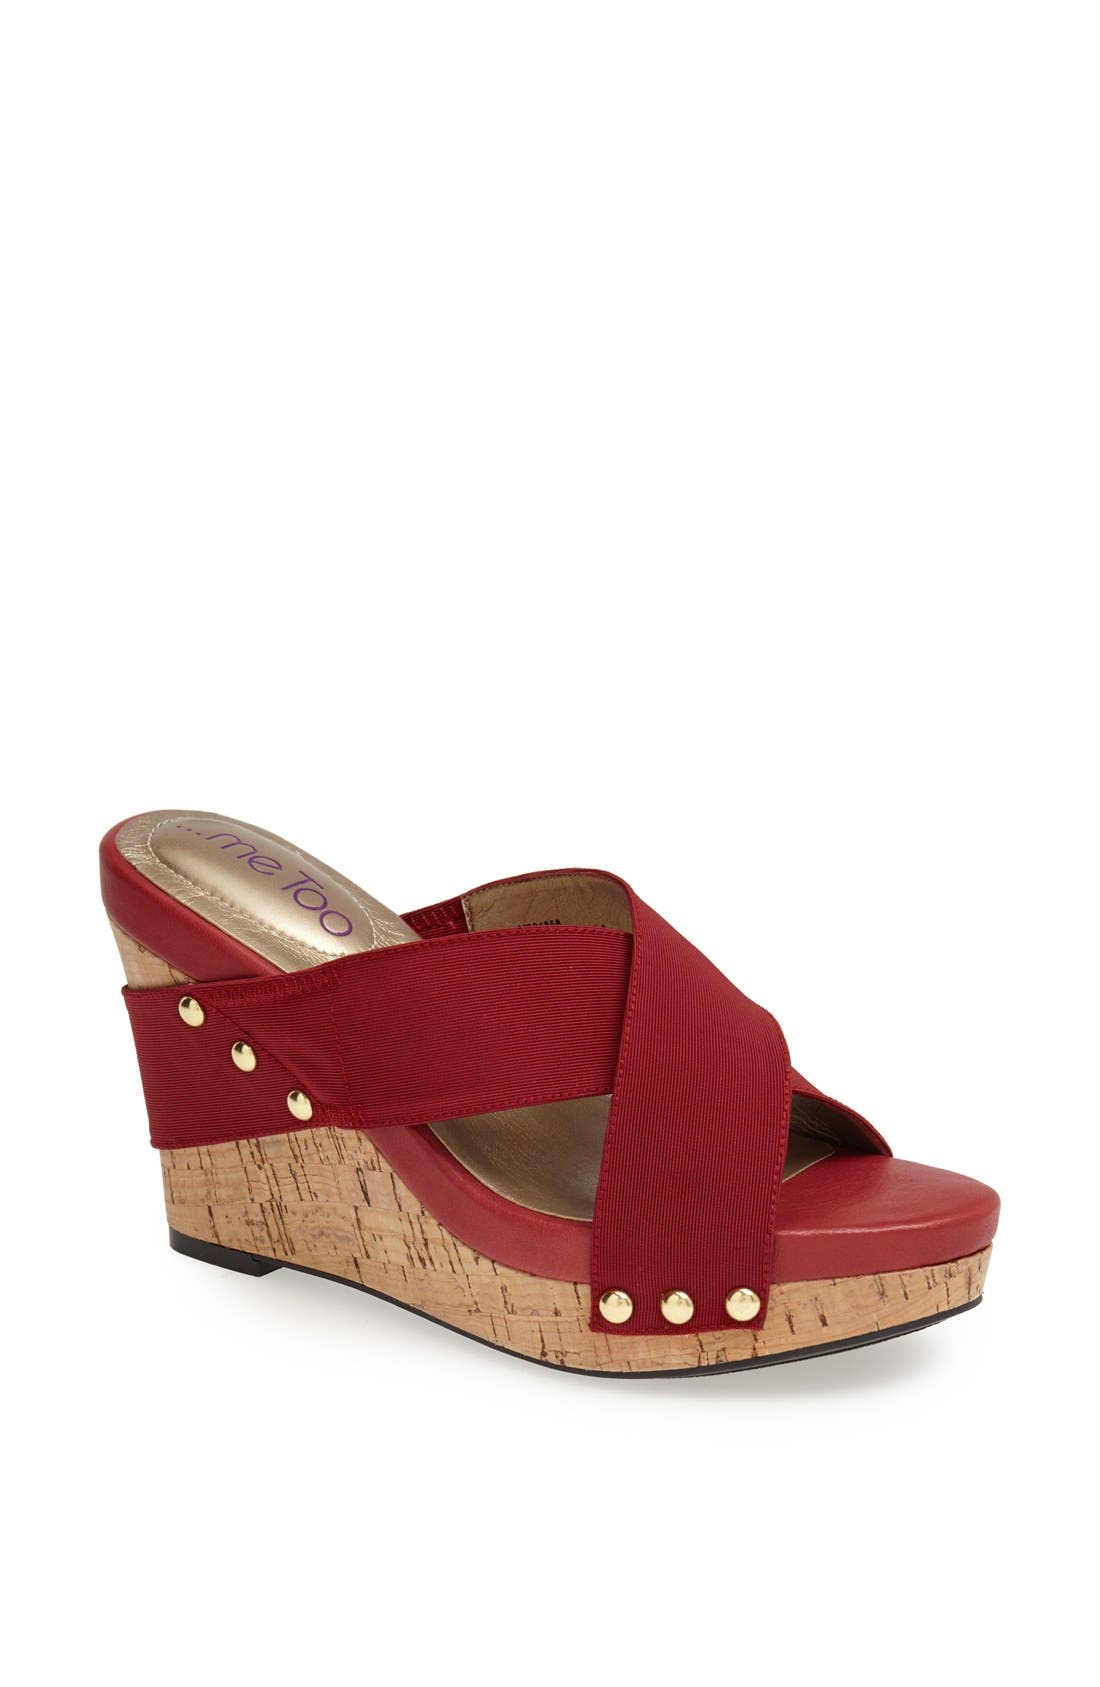 Alternate Image 1 Selected - Me Too 'Jessie' Wedge Sandal